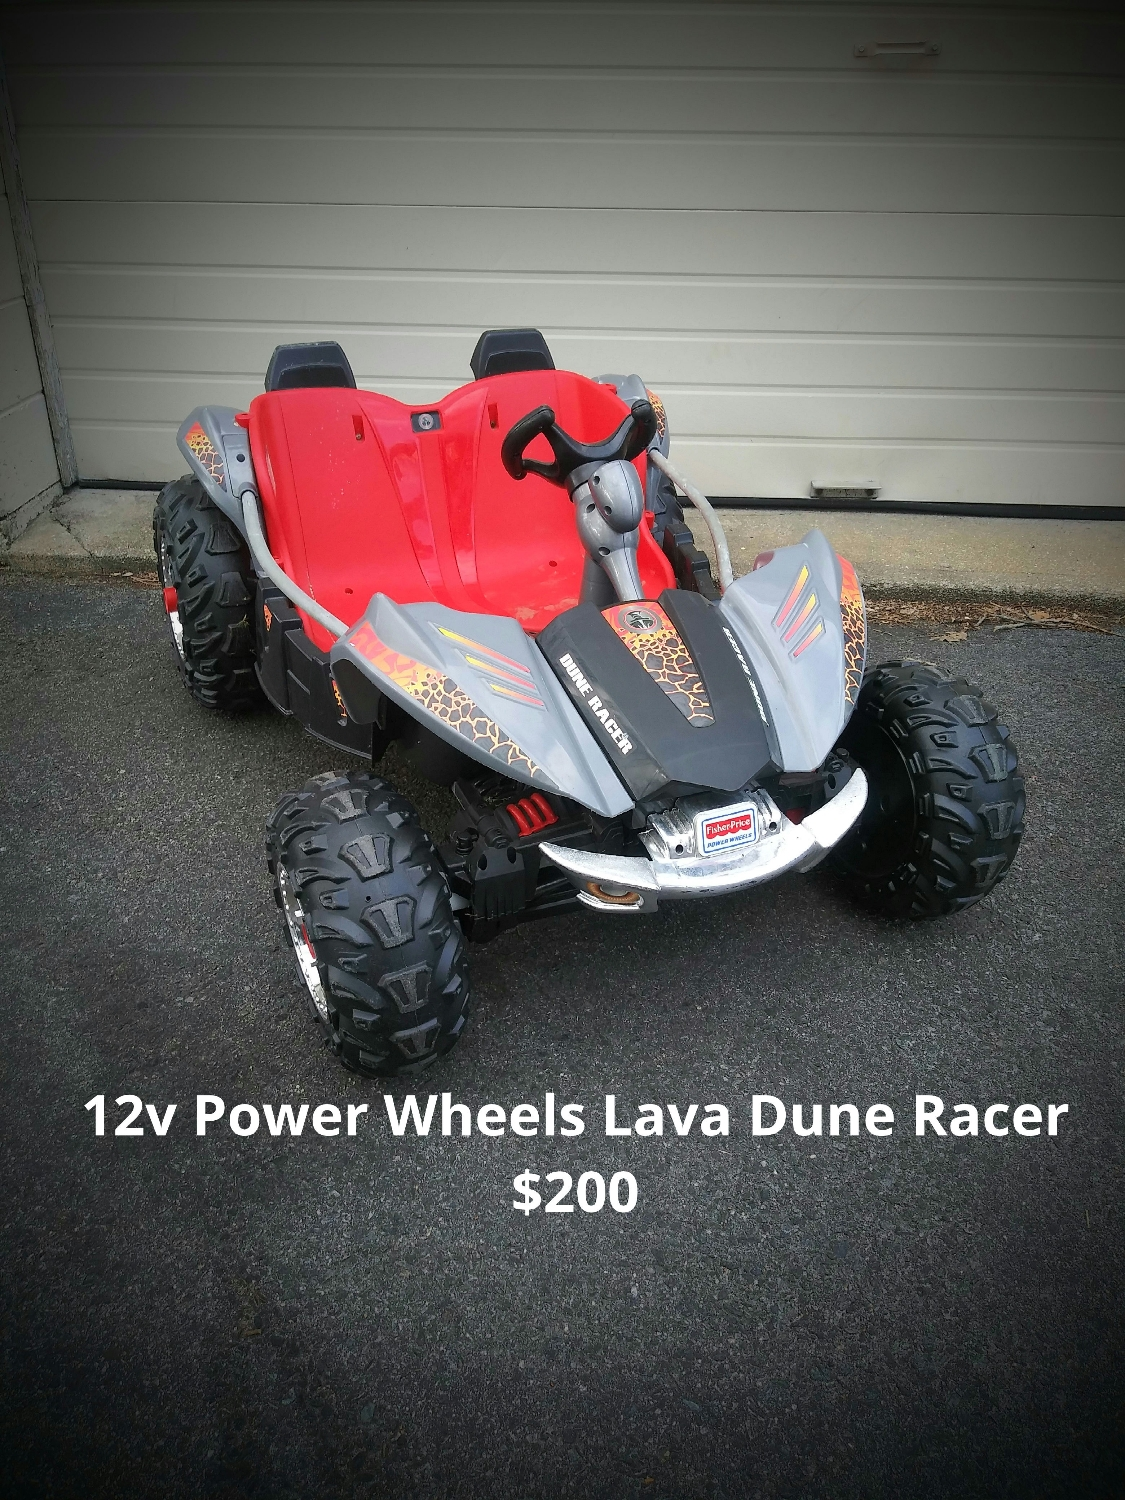 12v Power Wheels Lava Dune Racer